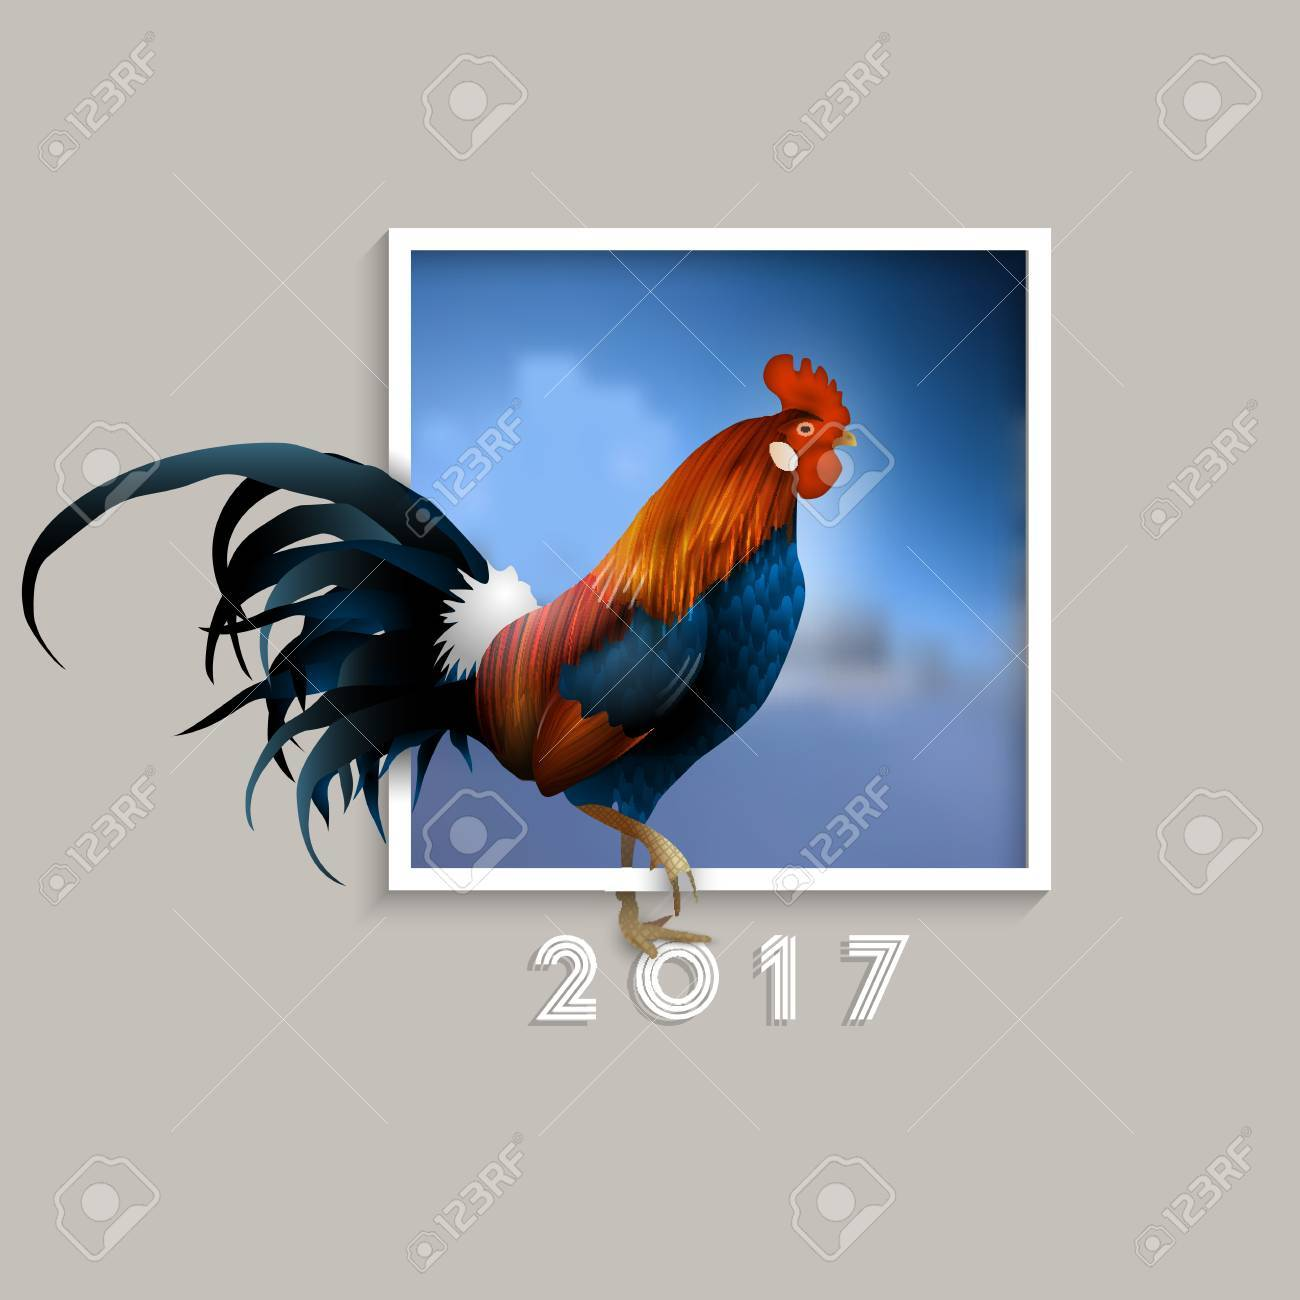 Rooster symbol of 2017 with blurred blue background in frame rooster symbol of 2017 with blurred blue background in frame chinese zodiac sign biocorpaavc